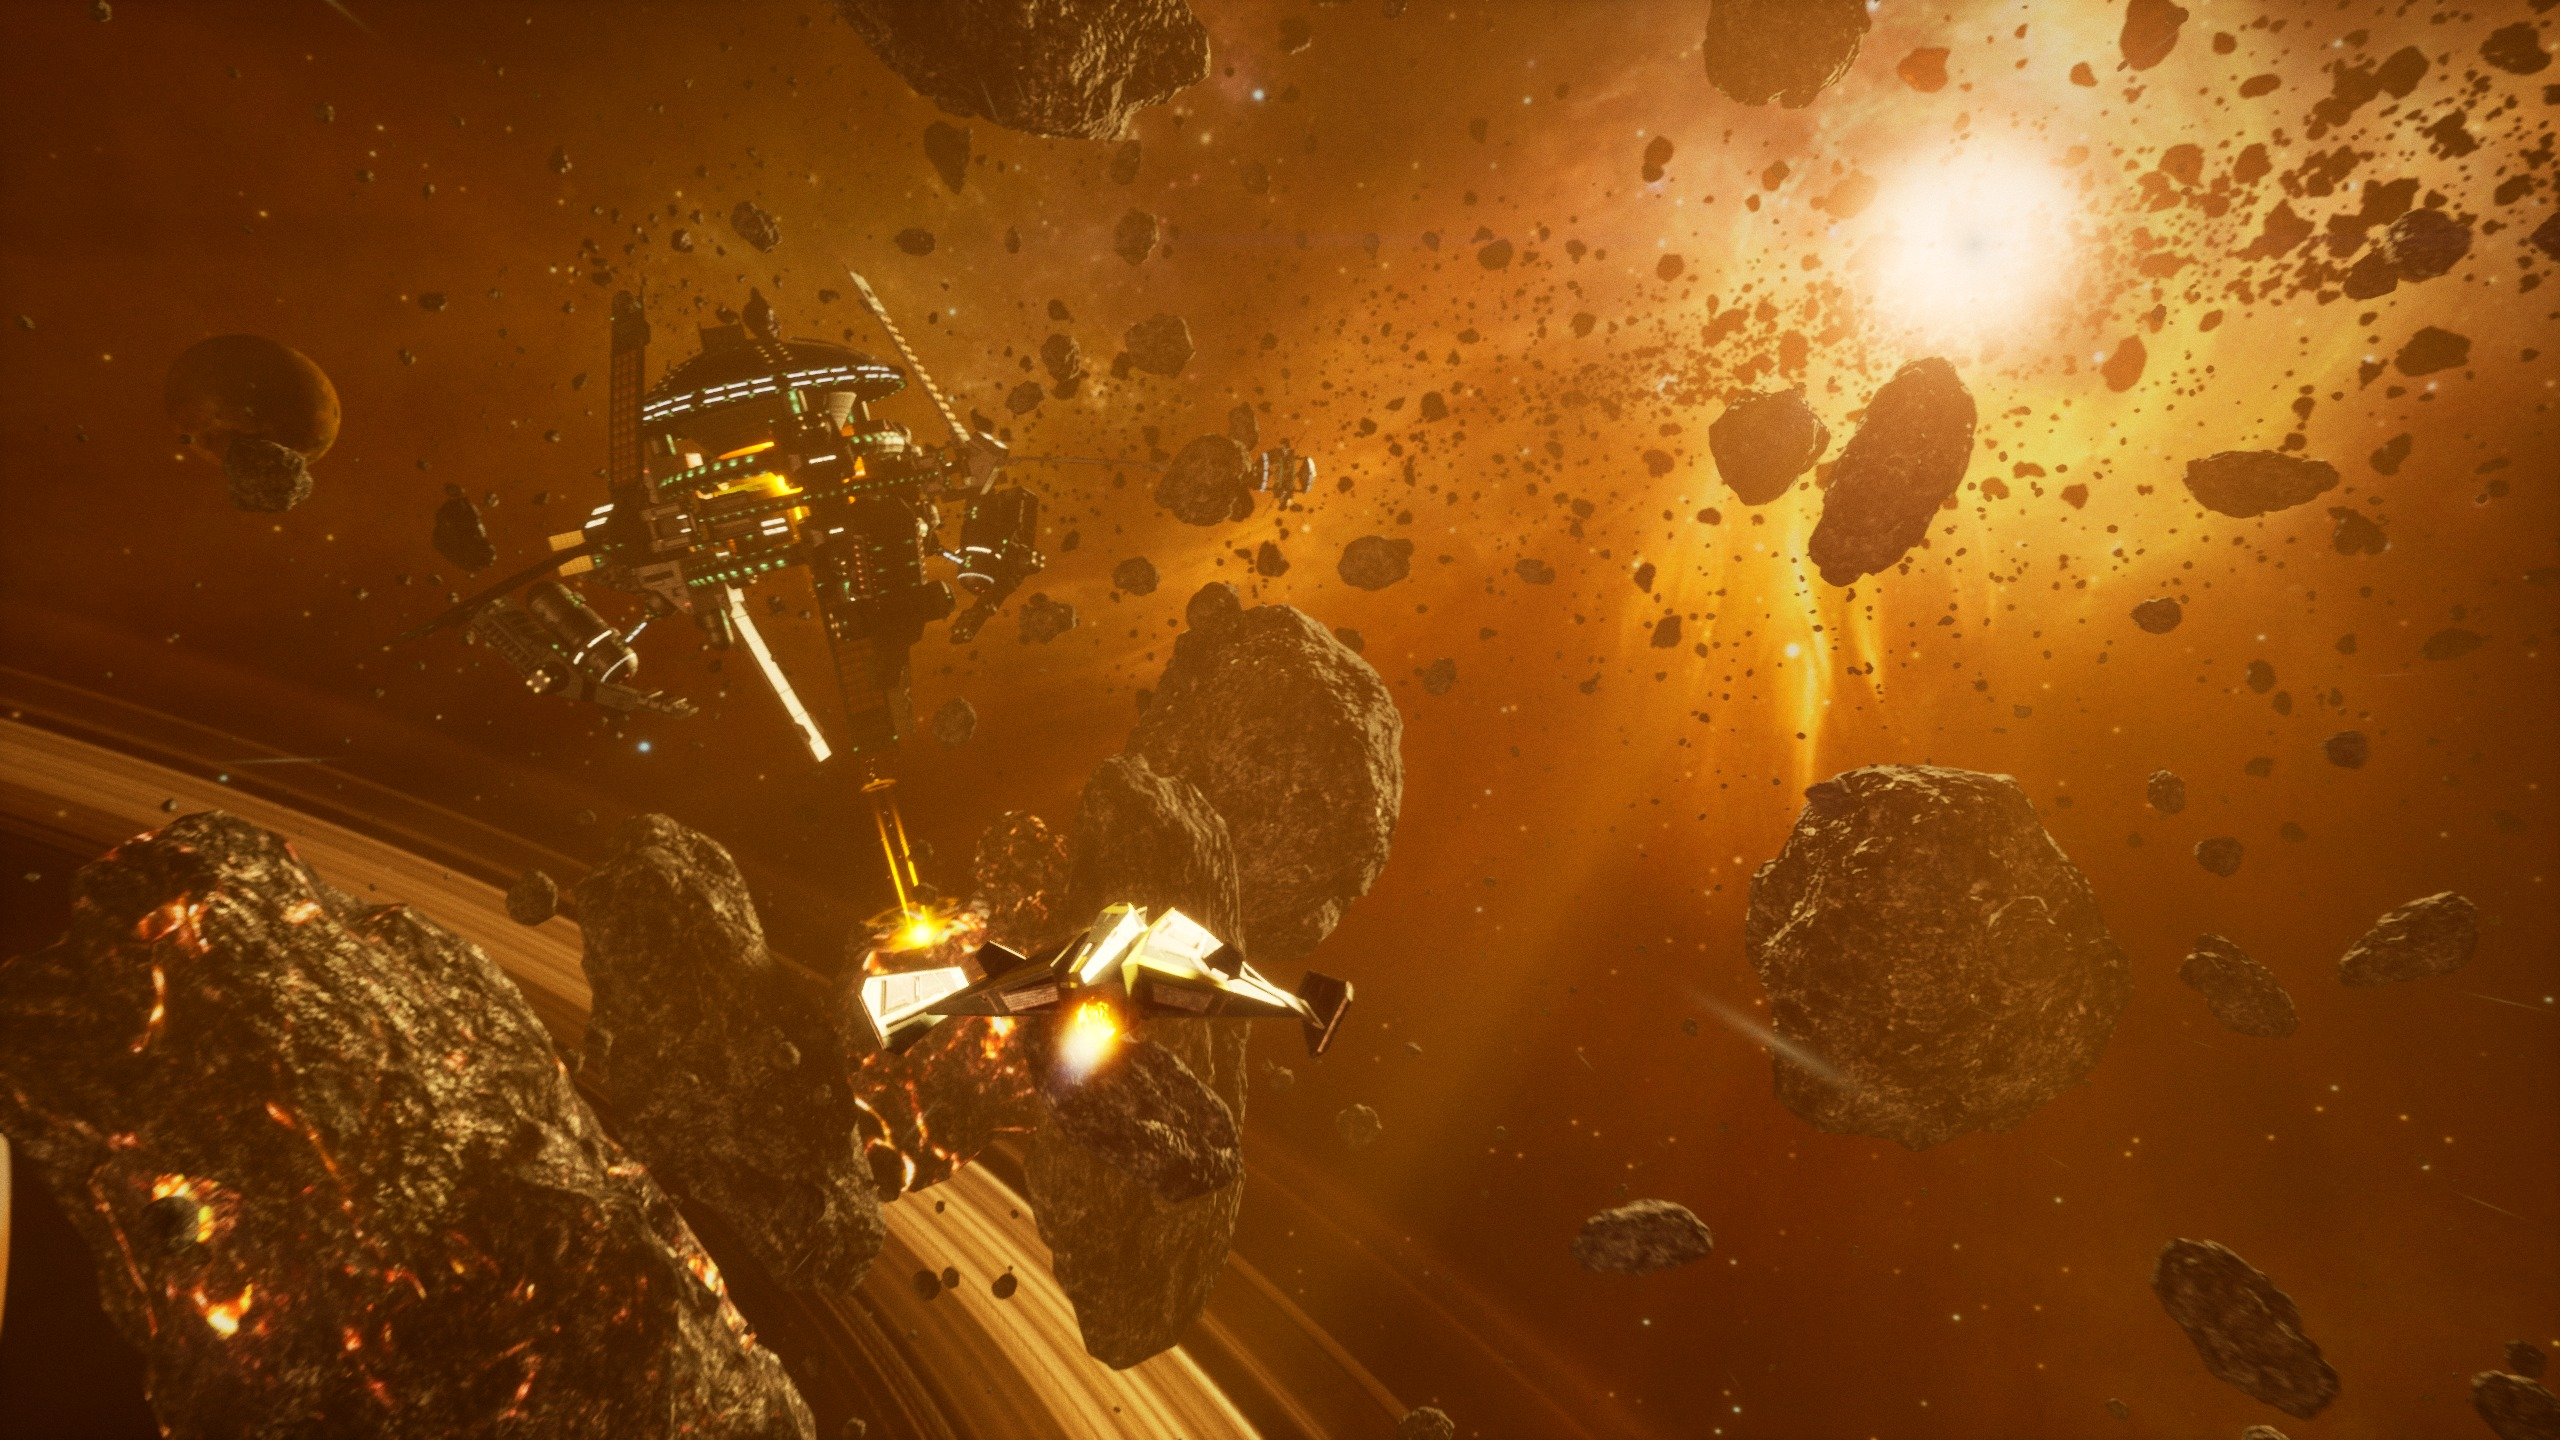 subdivision-infinity-dx-takes-off-on-consoles1-pc-in-early-2019-frikigamers.com.jpg